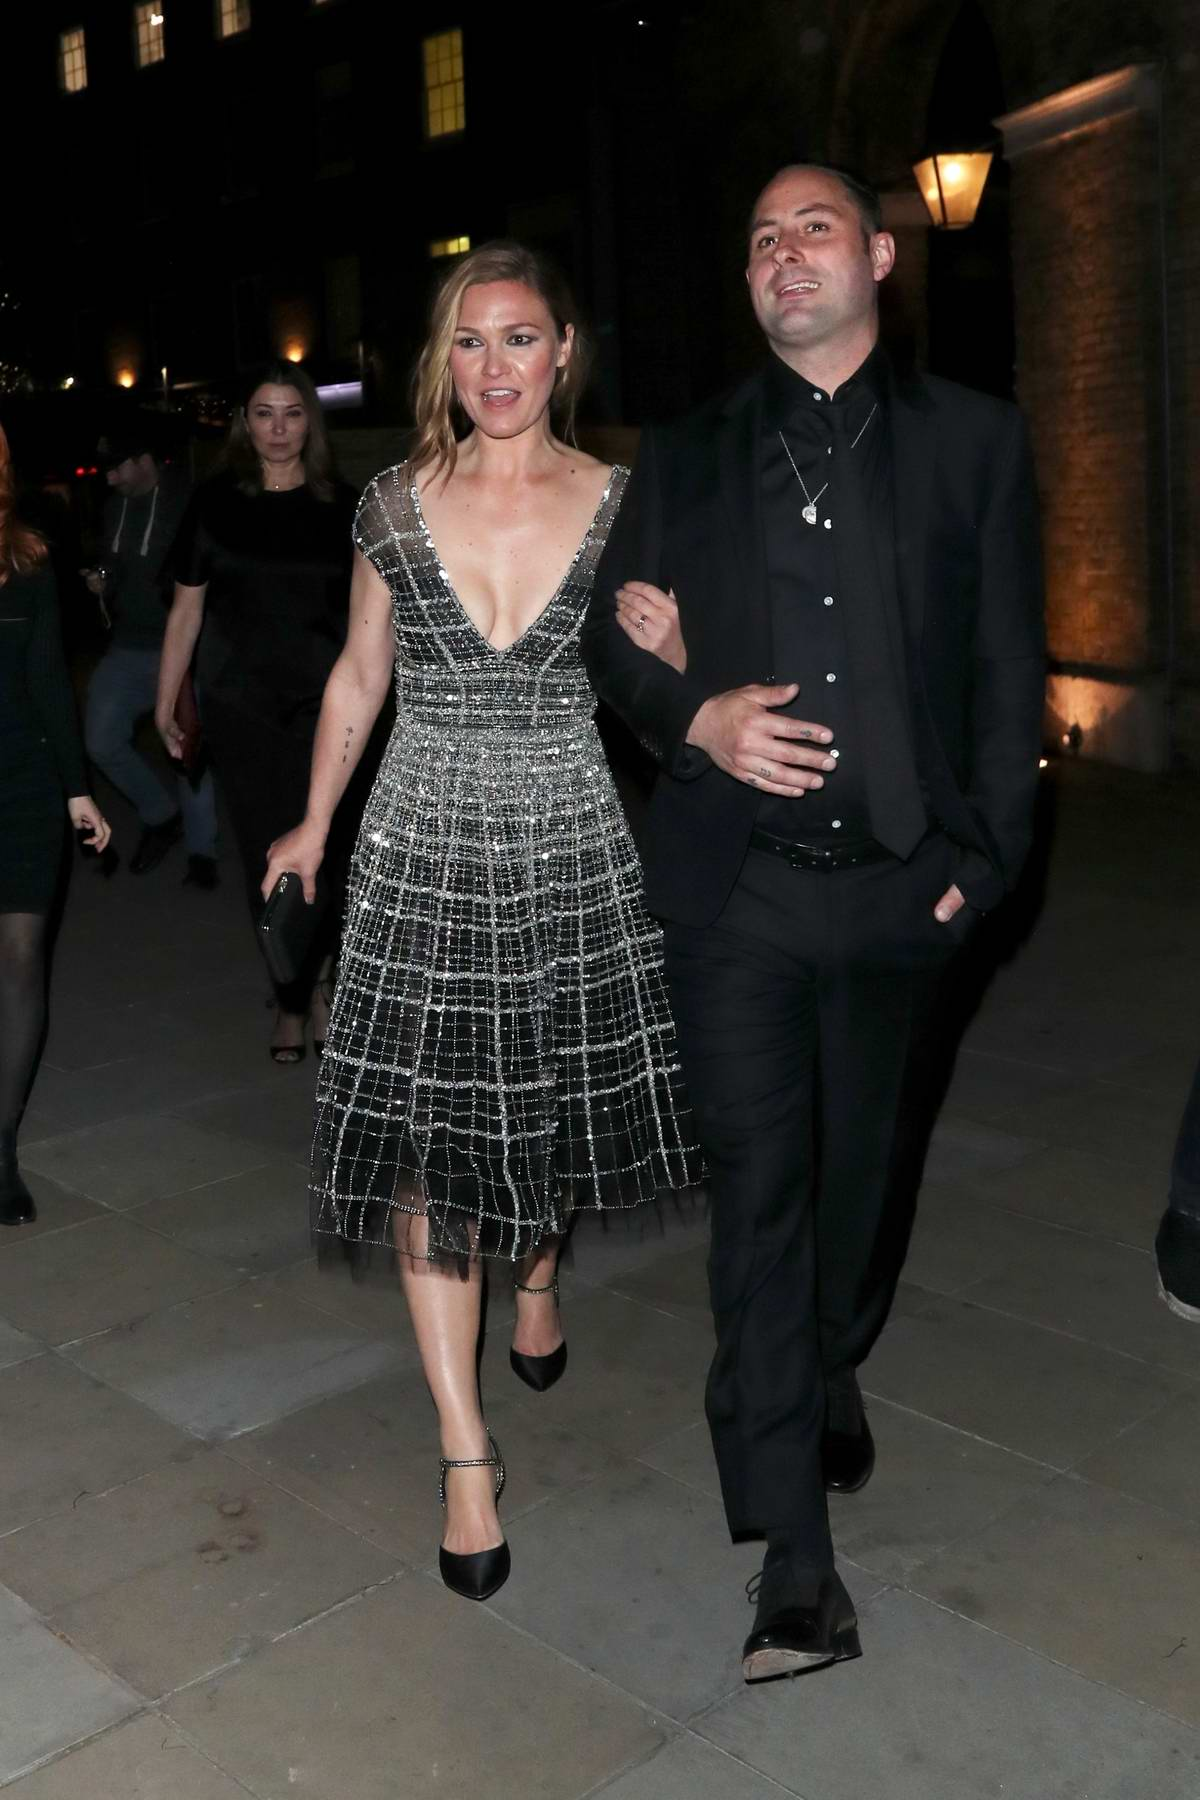 Julia Stiles attends 'Riviera' Season Two premiere hosted at Saatchi Gallery in London, UK